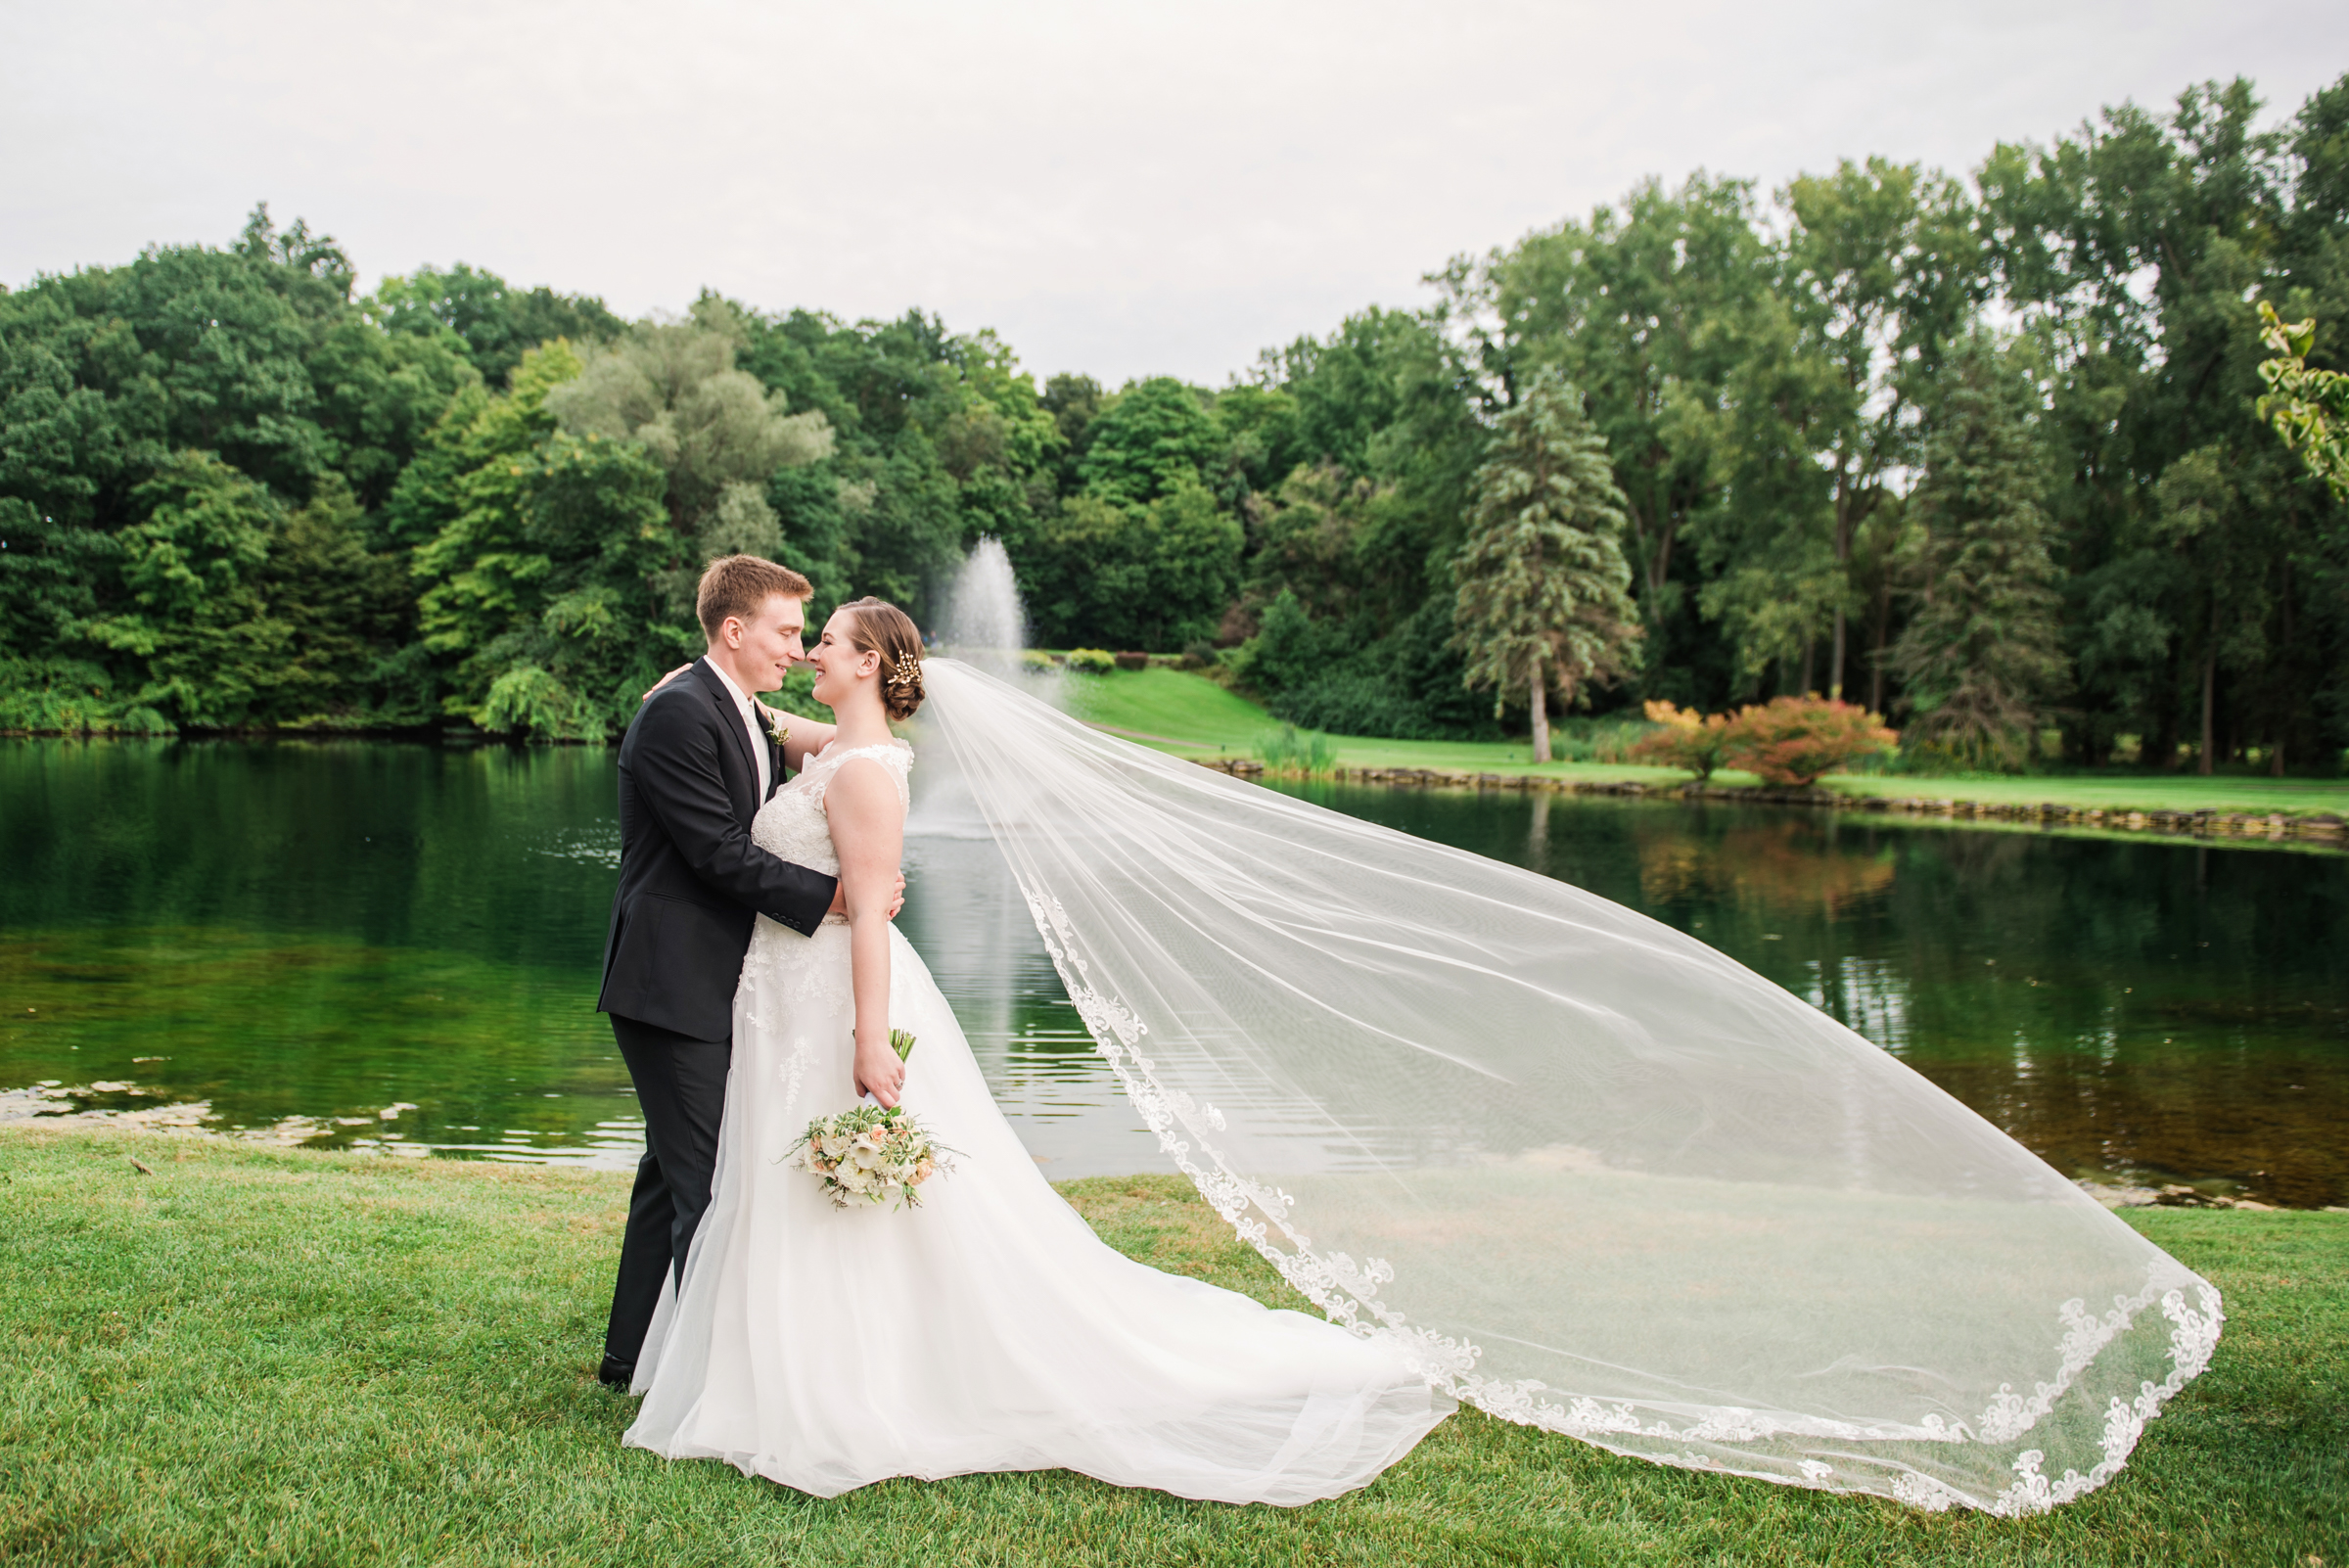 JILL_STUDIO_Wedding_JILL_STUDIO_Rochester_NY_Photographer_22-DSC_4169.jpg